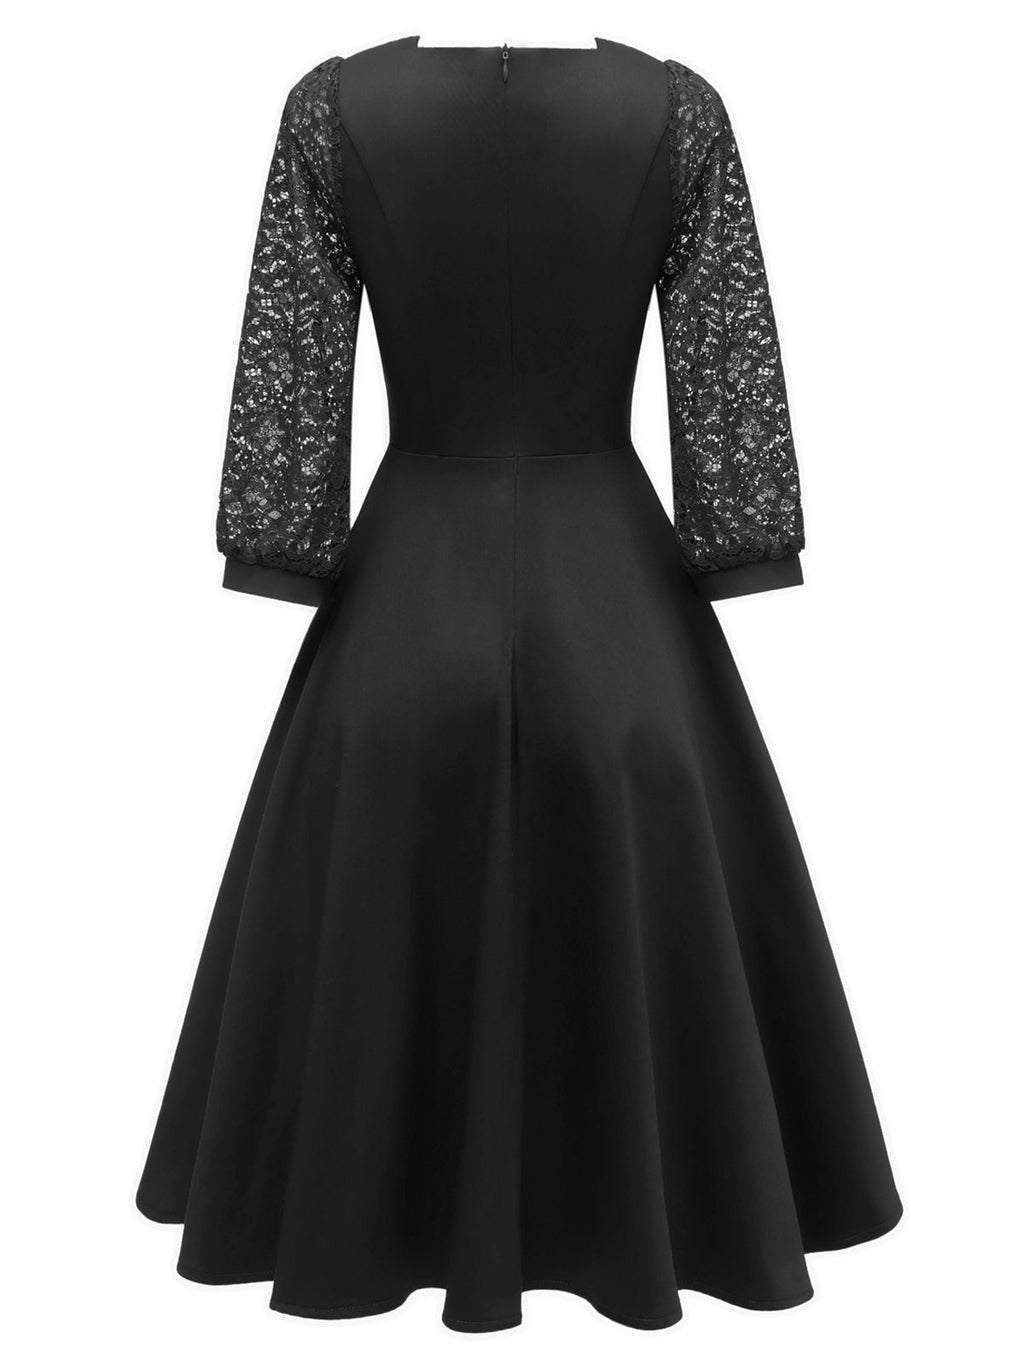 1950s Lace Patchwork Square Neck Dress